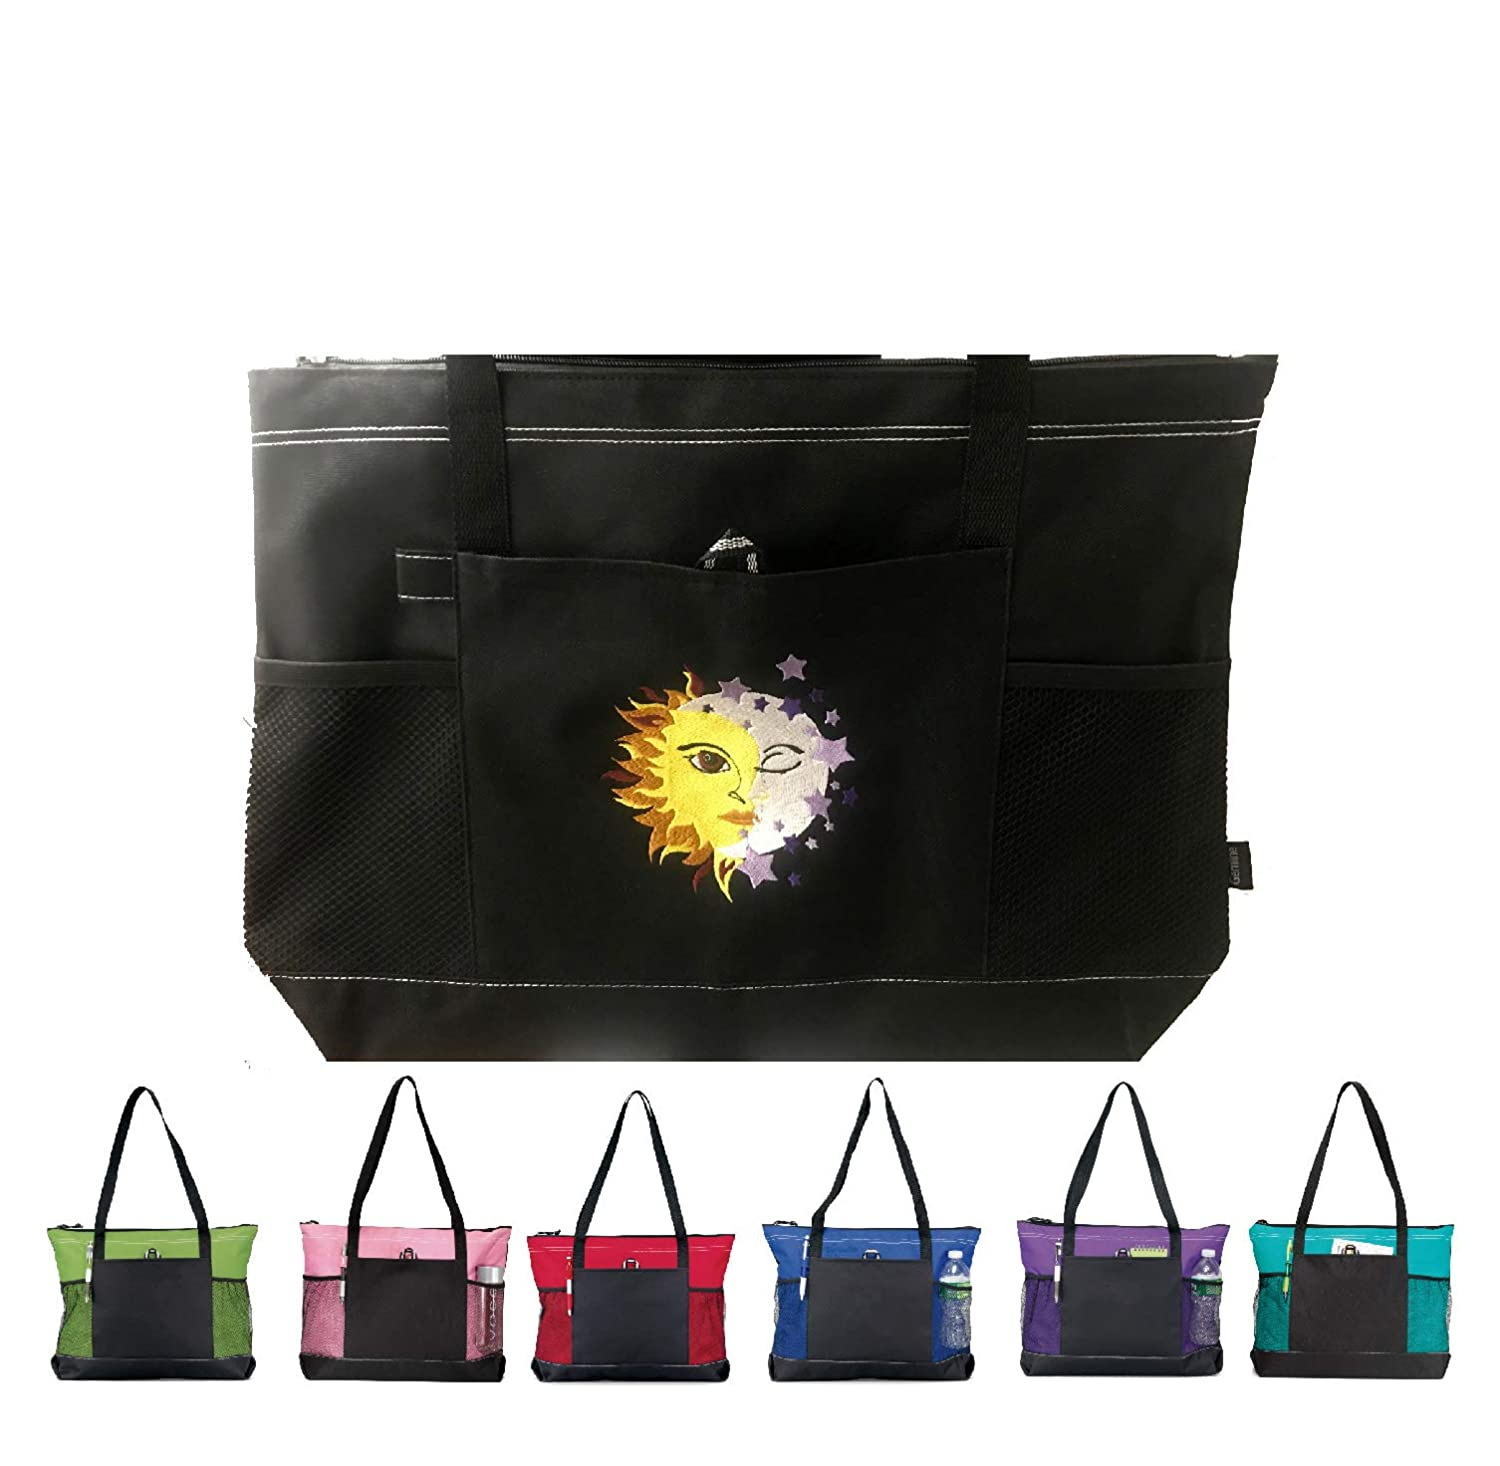 Embroidered New Orleans Mall SunMoon Zippered Bag Tote El Paso Mall